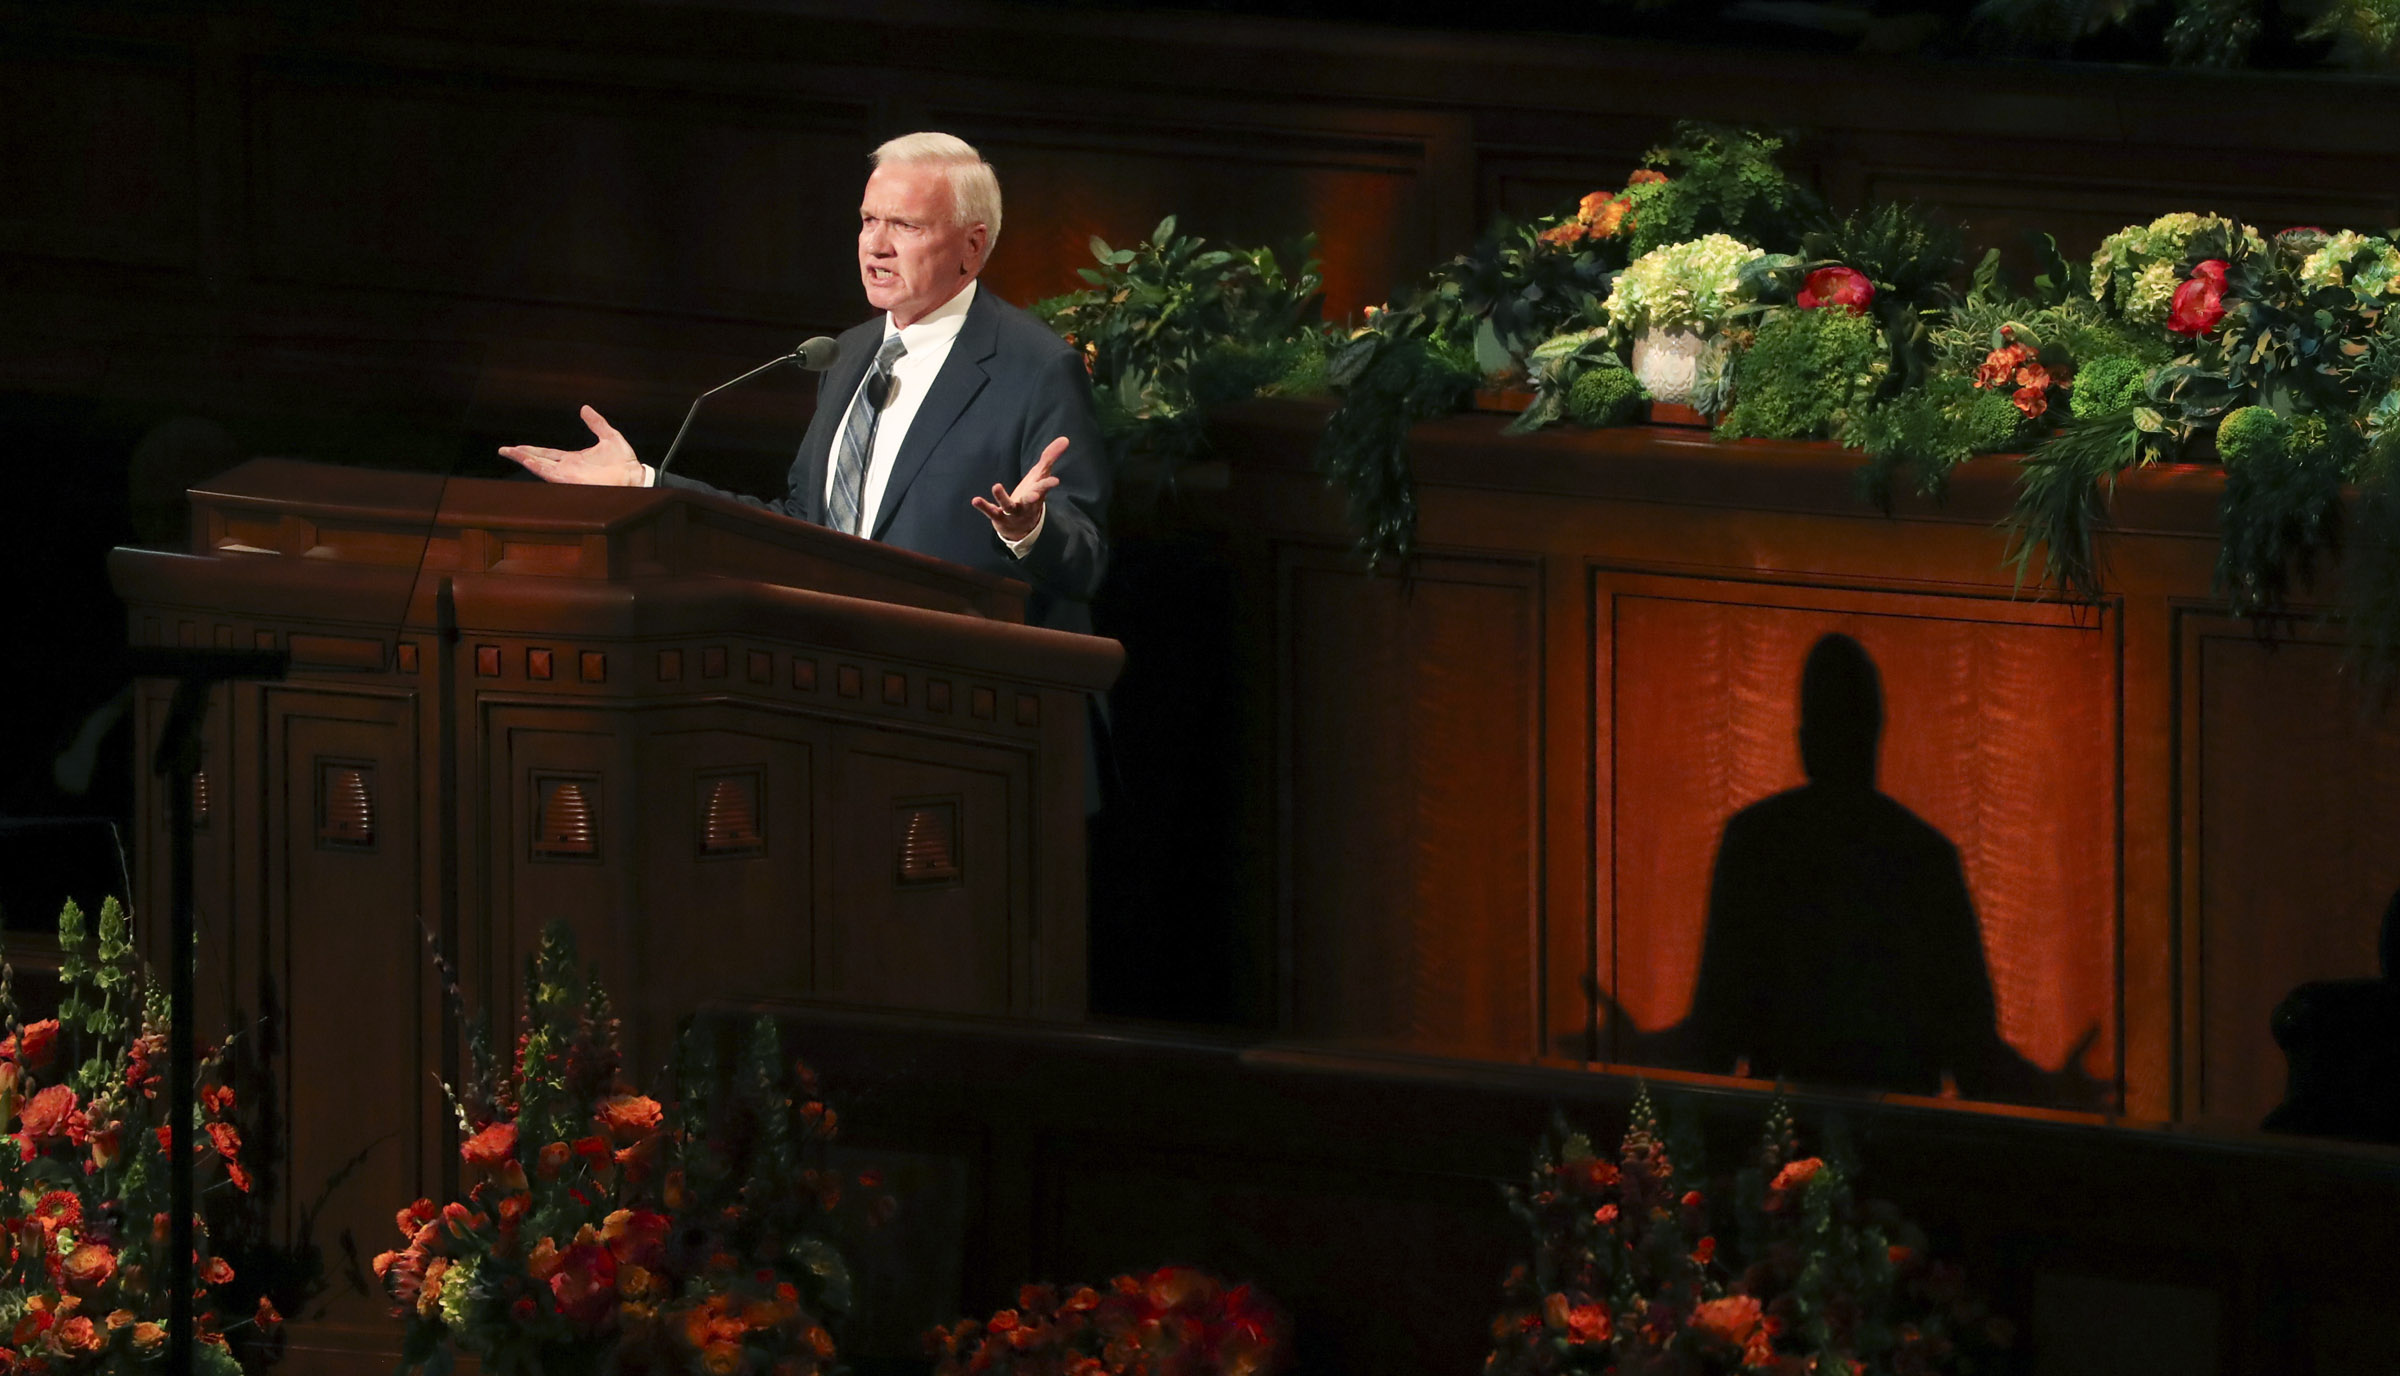 Elder Brook P. Hales, a General Authority Seventy, speaks in the Conference Center in Salt Lake City during the morning session of the 189th Annual General Conference of The Church of Jesus Christ of Latter-day Saints on Saturday, April 6, 2019.